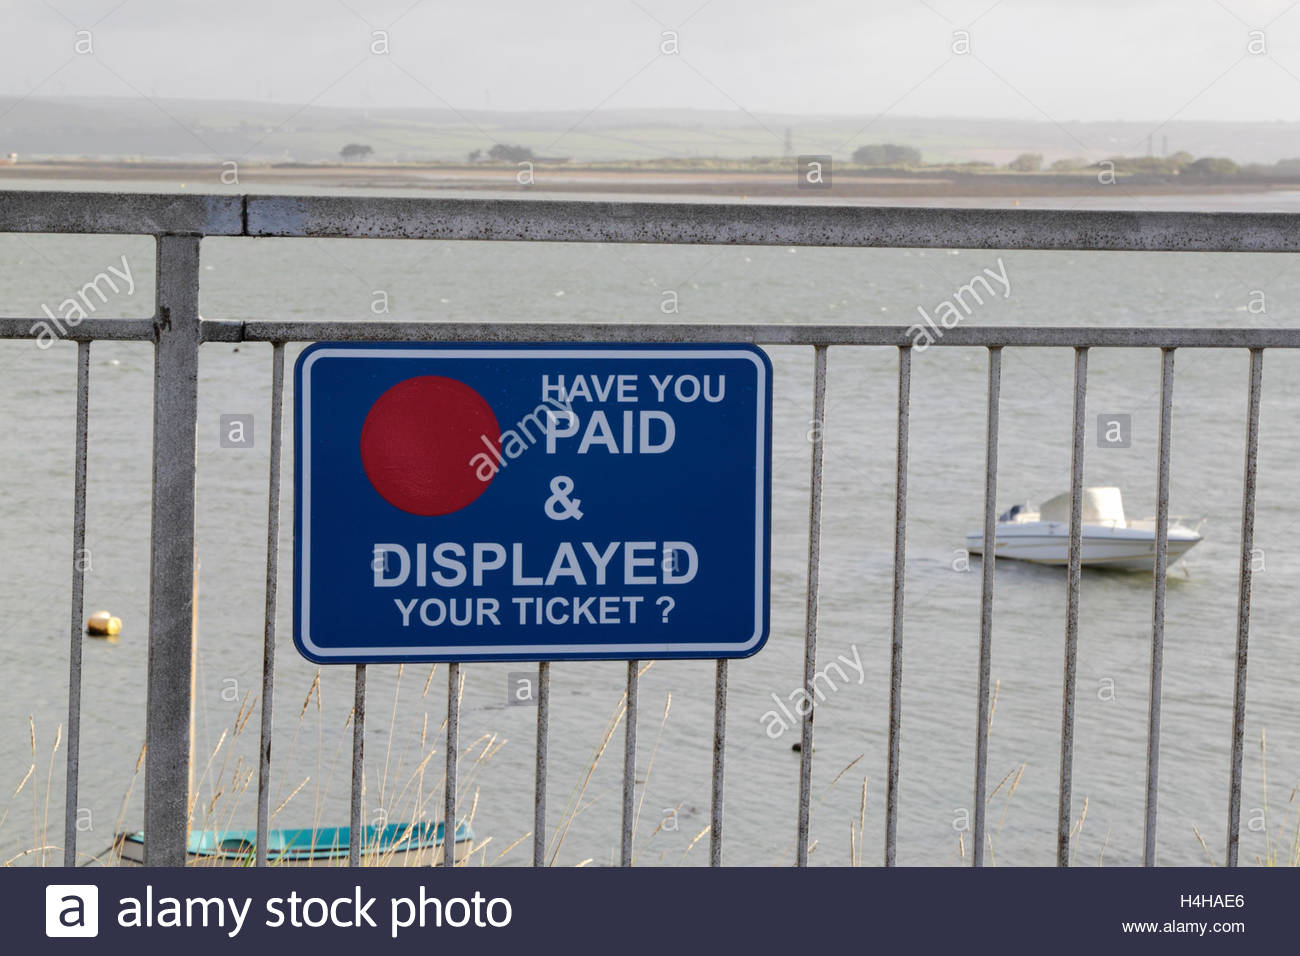 Have You Paid and Displayed Car Park Sign, Appledore, Devon, England. - Stock Image